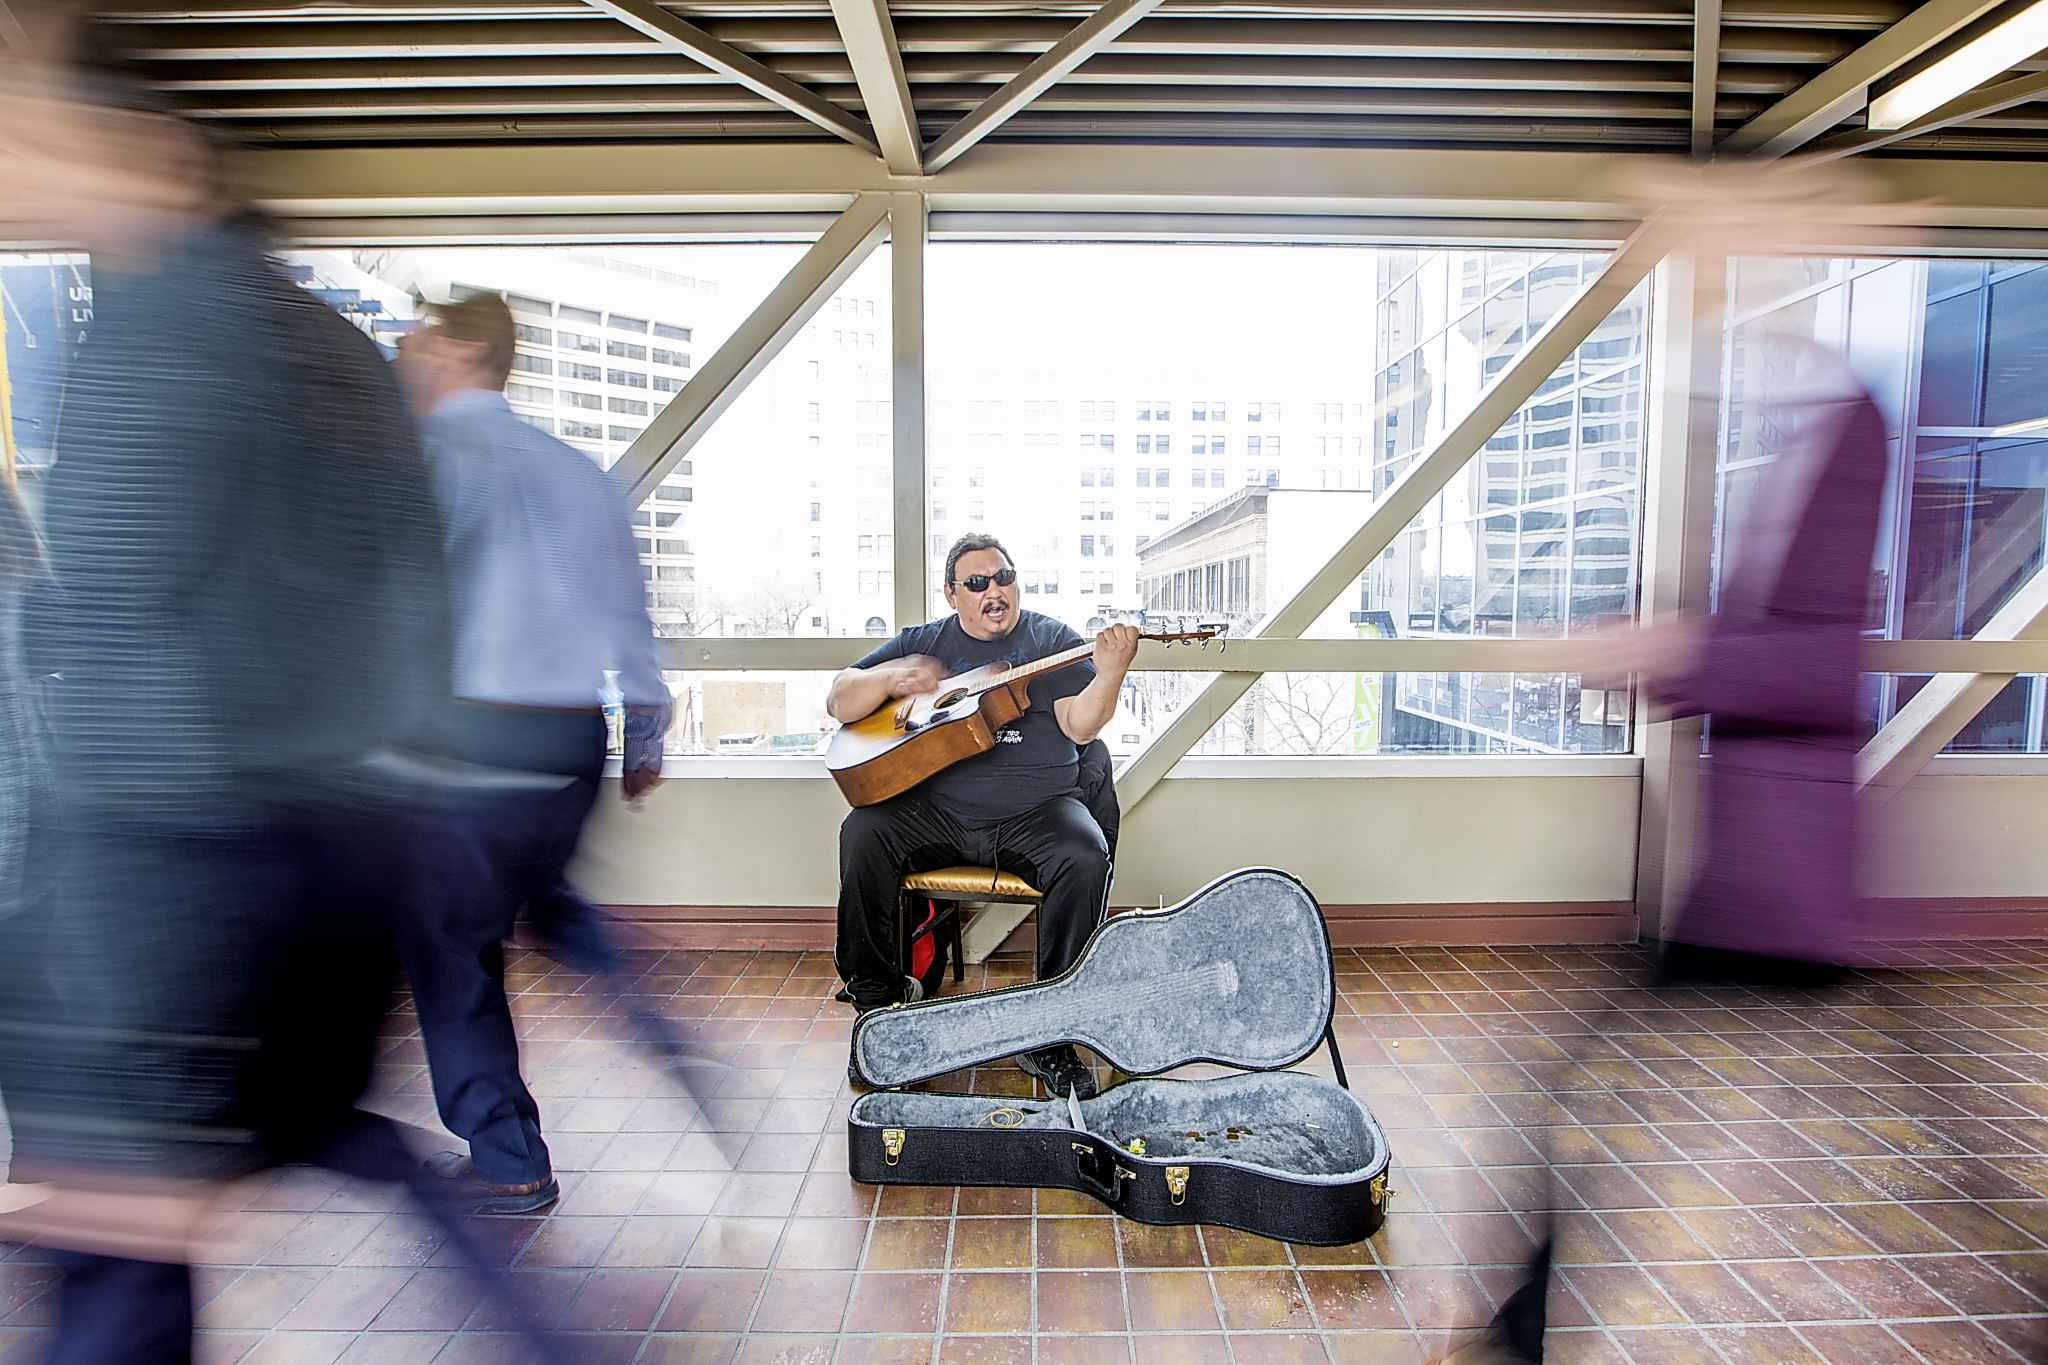 Anywhere you can play and get heard by people is positive, Spence says. (Mikaela MacKenzie / Winnipeg Free Press)